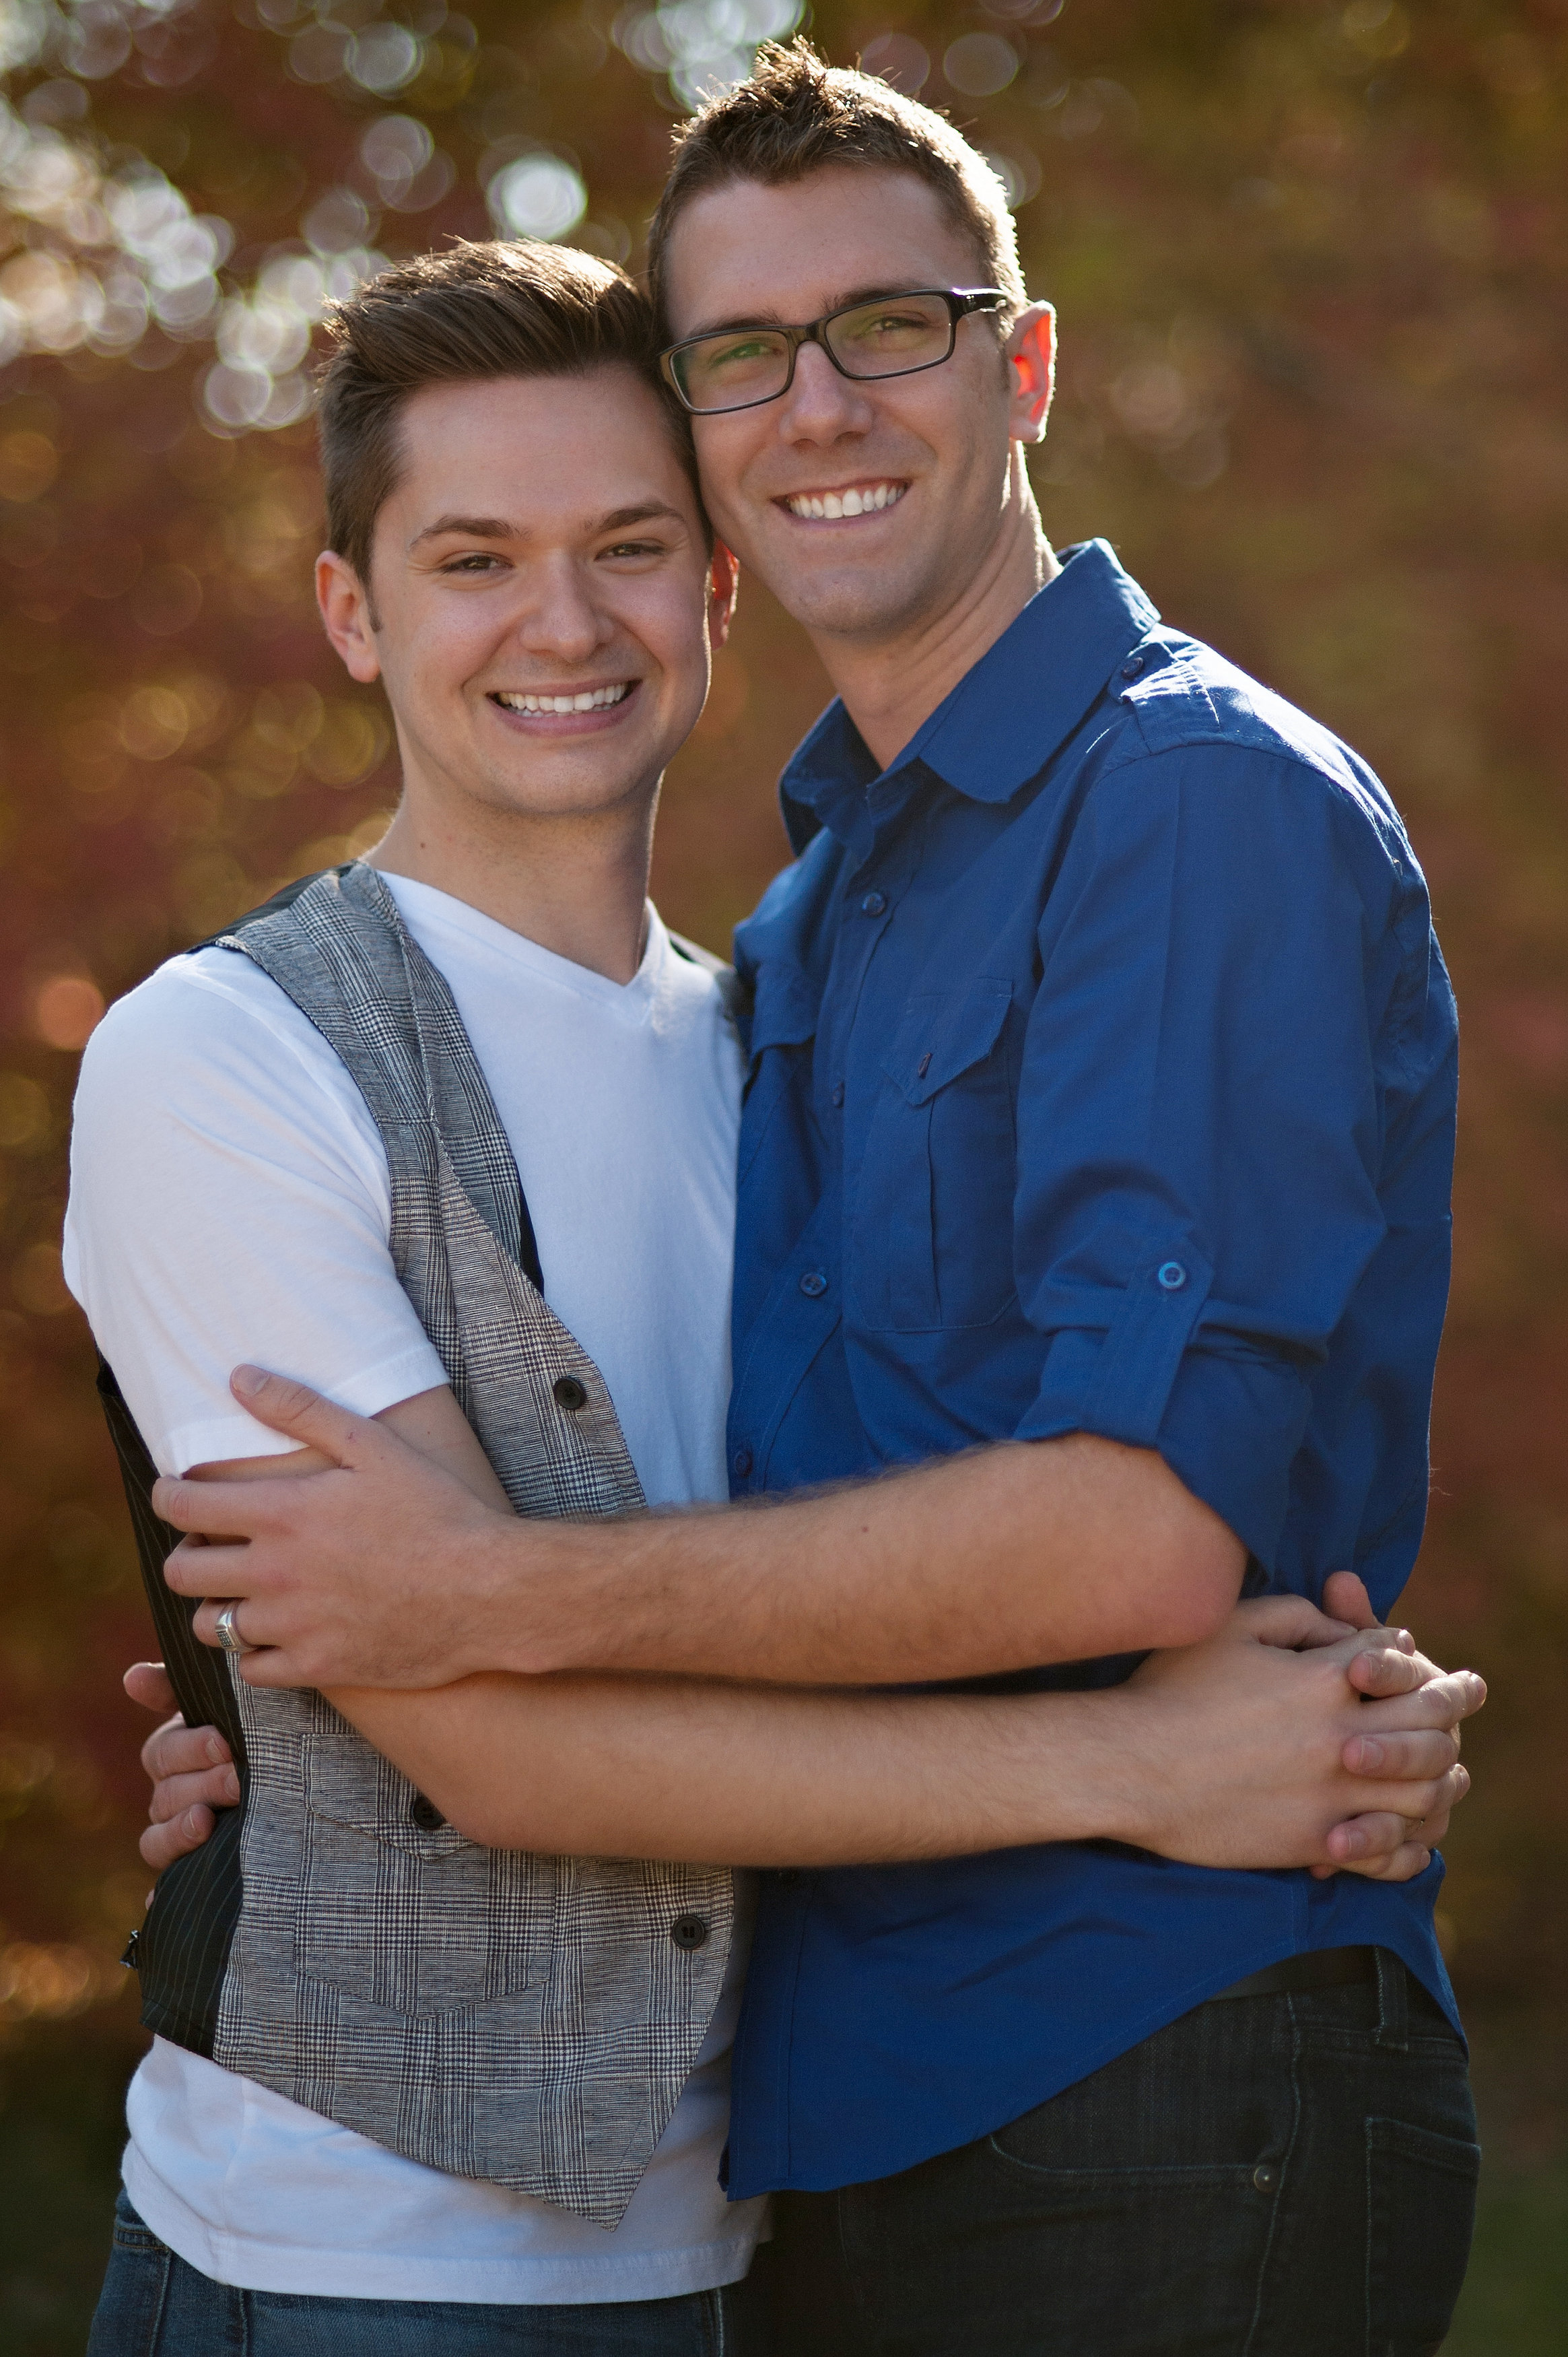 josh-parker-014-sacramento-same-sex-engagement-wedding-photographer-katherine-nicole-photography.JPG